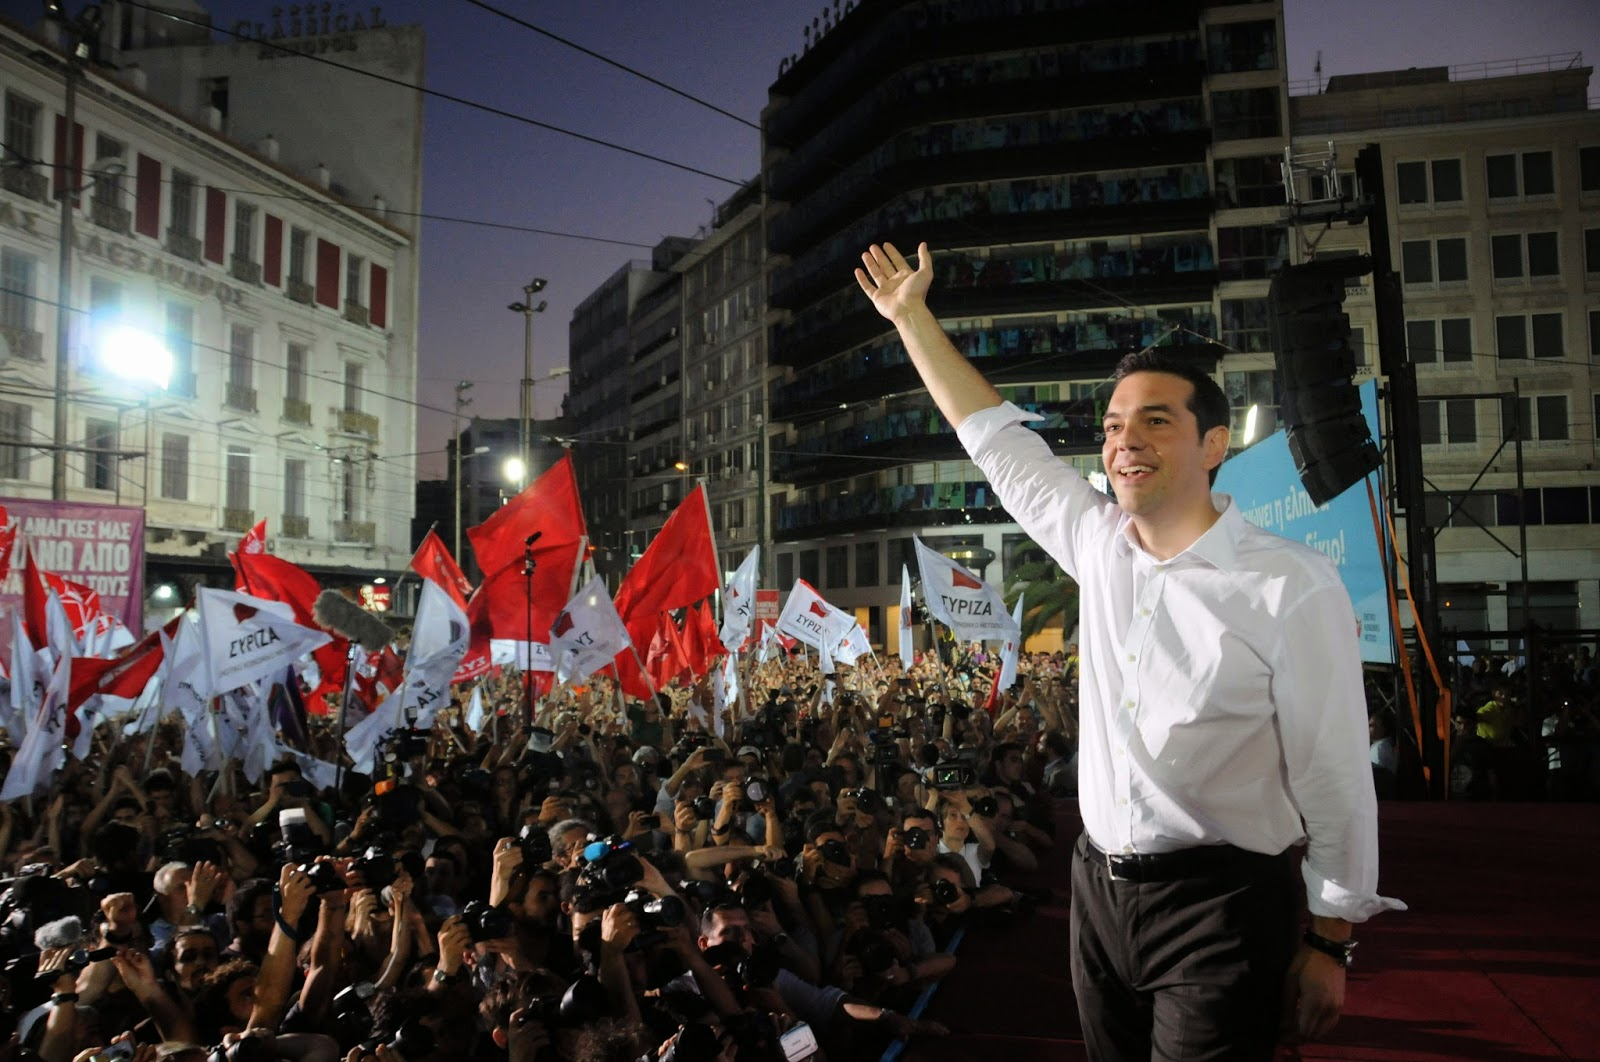 SYRIZA is planning Greece's post-bailout future